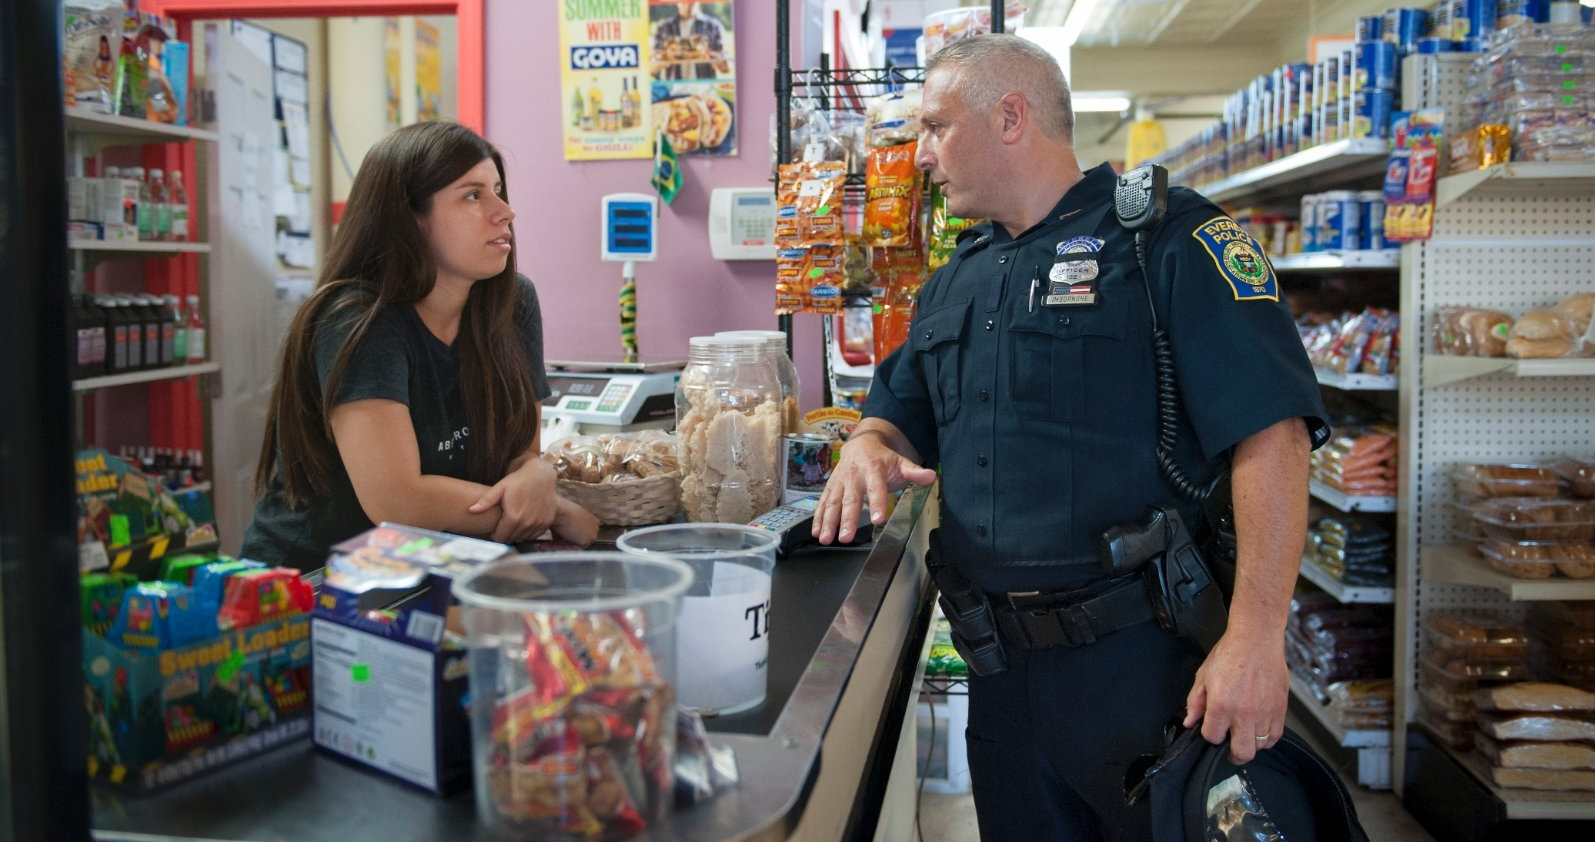 A police officer talks with a cashier while walking his beat.